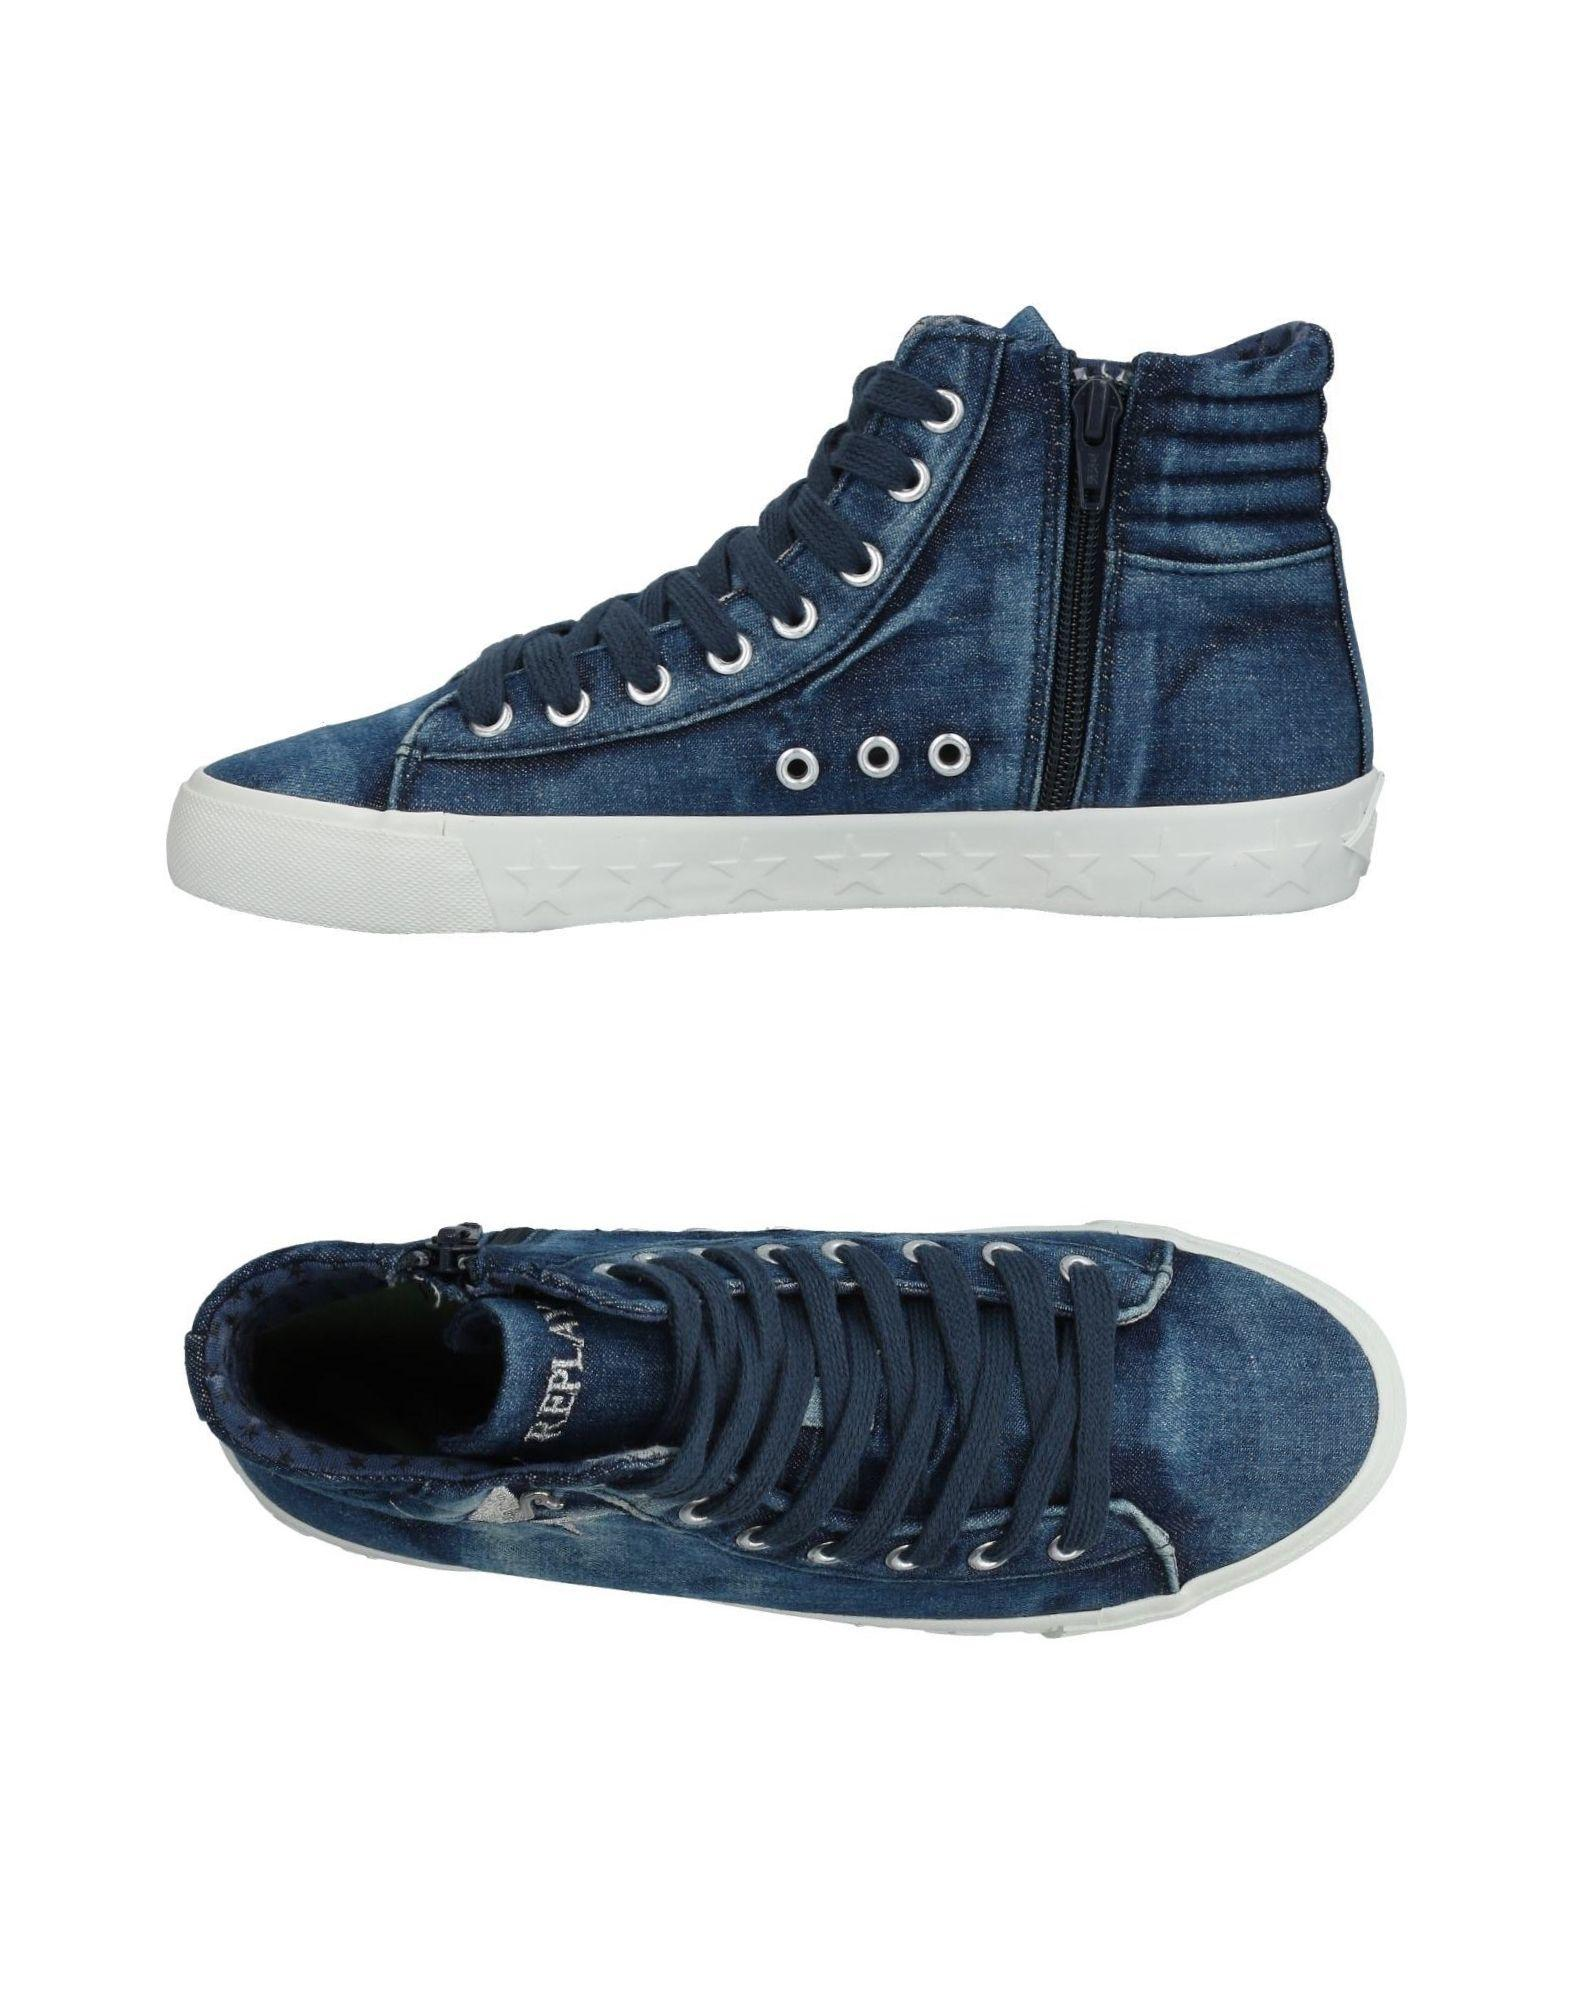 FOOTWEAR - High-tops & sneakers Replay Discount Real Free Shipping Low Shipping Fee Manchester Great Sale Cheap Price TQ3ThoAi9